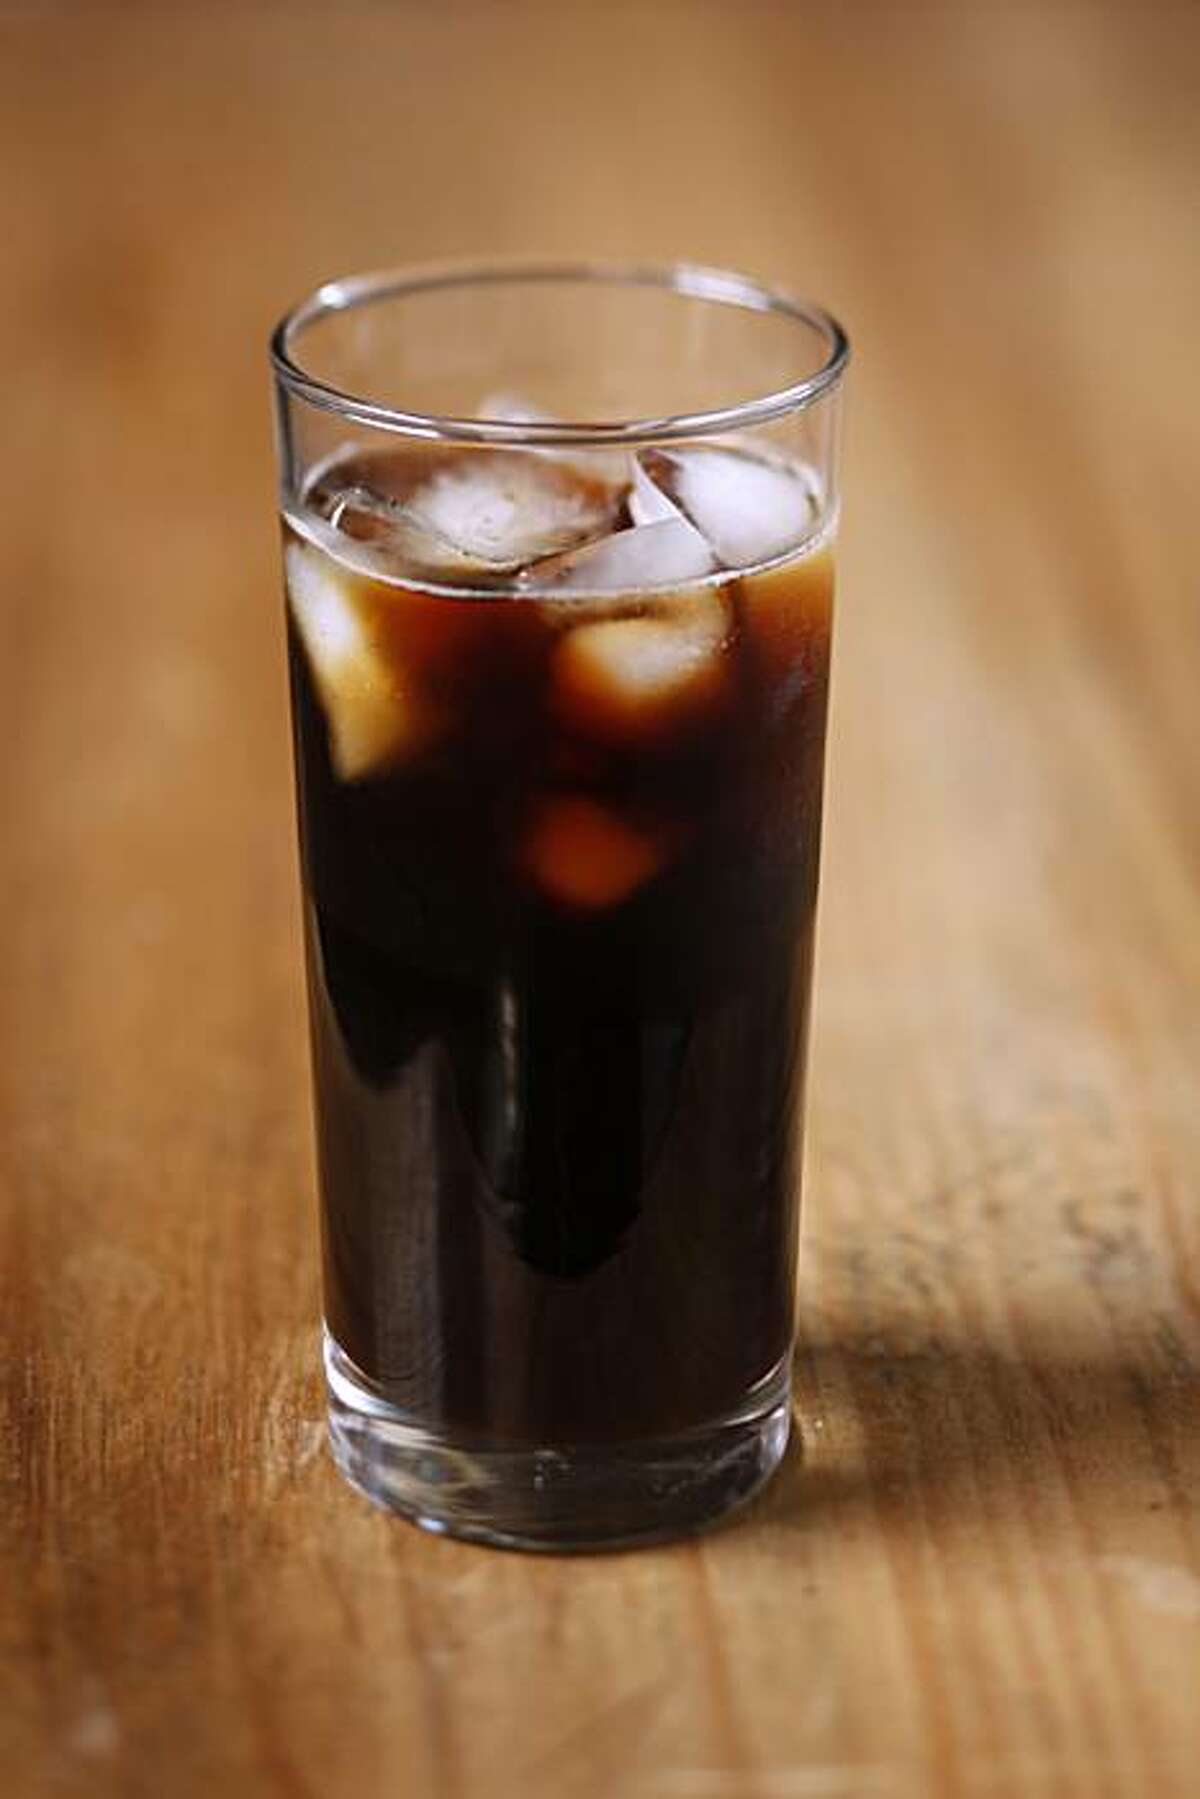 Cold-brewed iced coffee in San Francisco, Calif., on June 30, 2010.